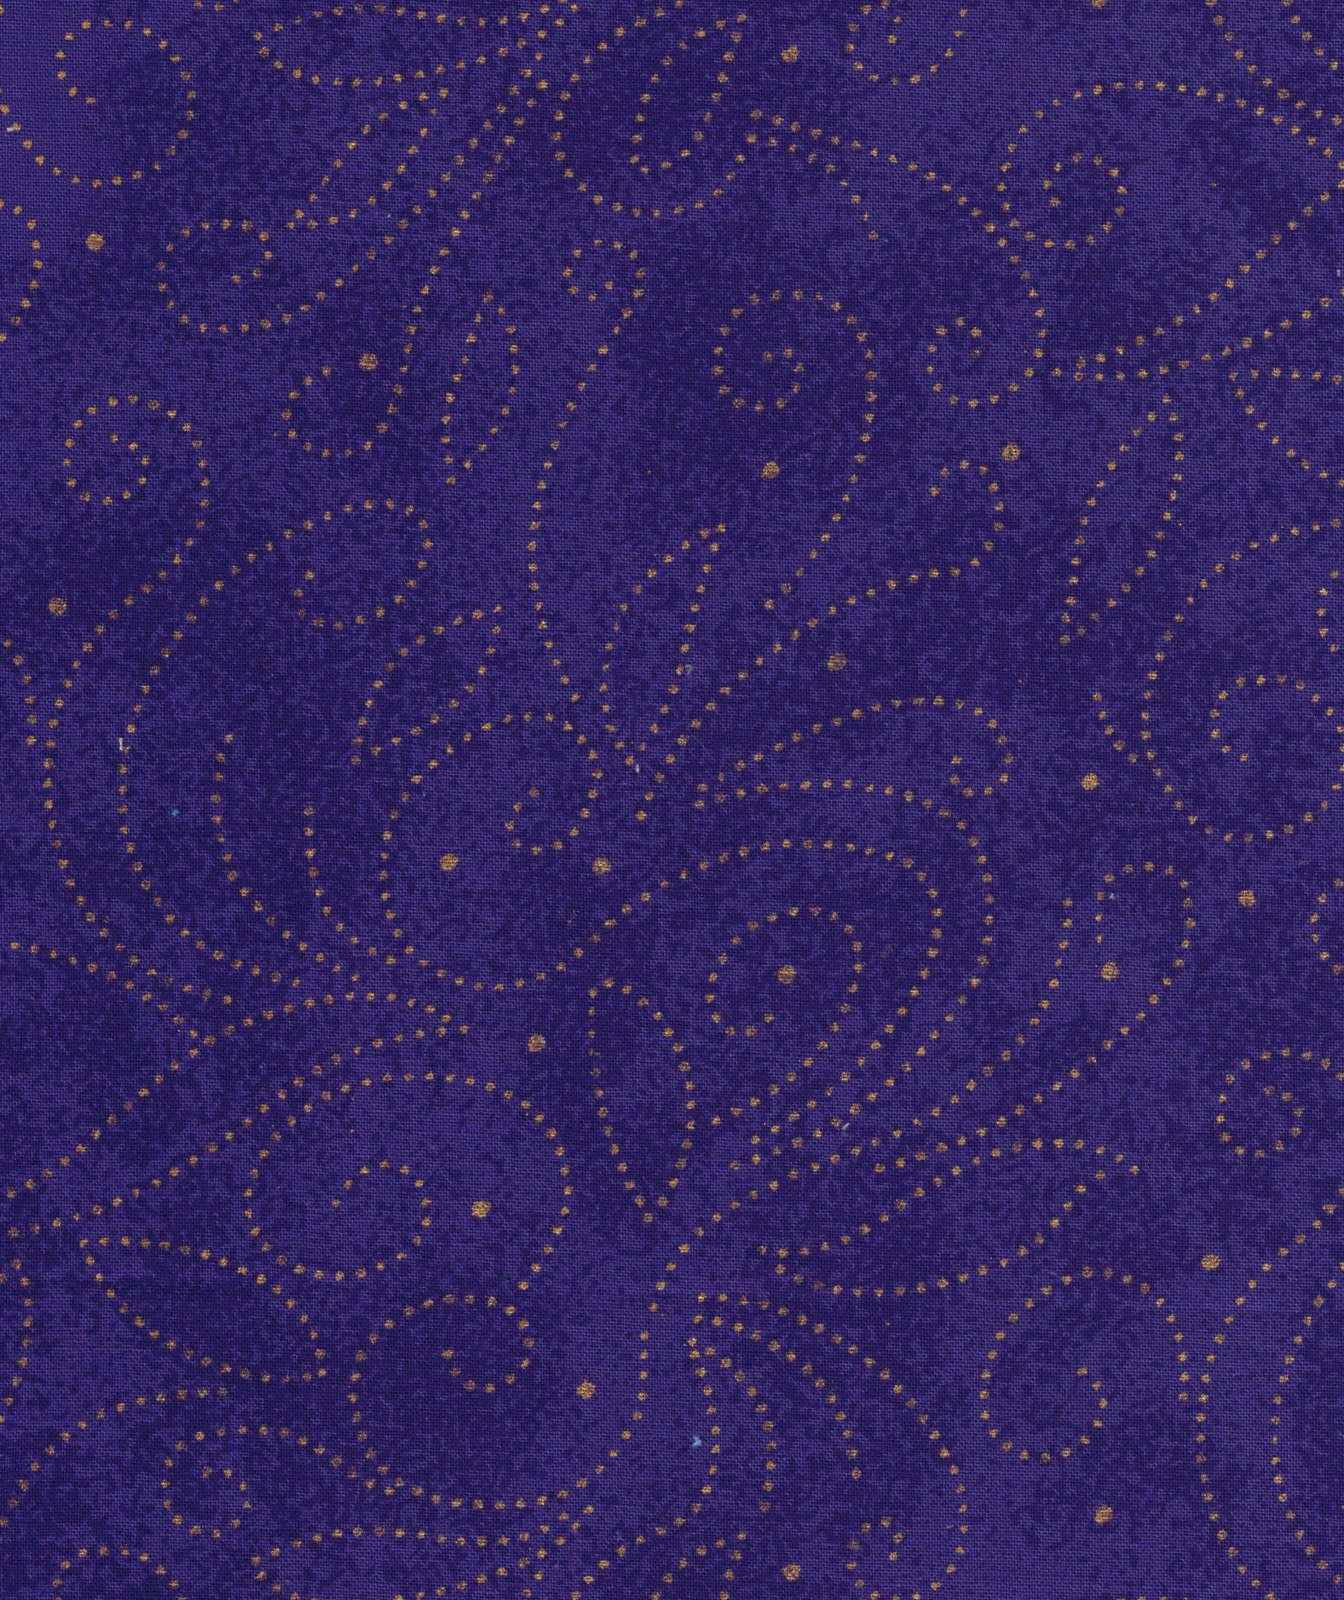 110 IN. SCROLLS COTTON QUILT BACK PURPLE